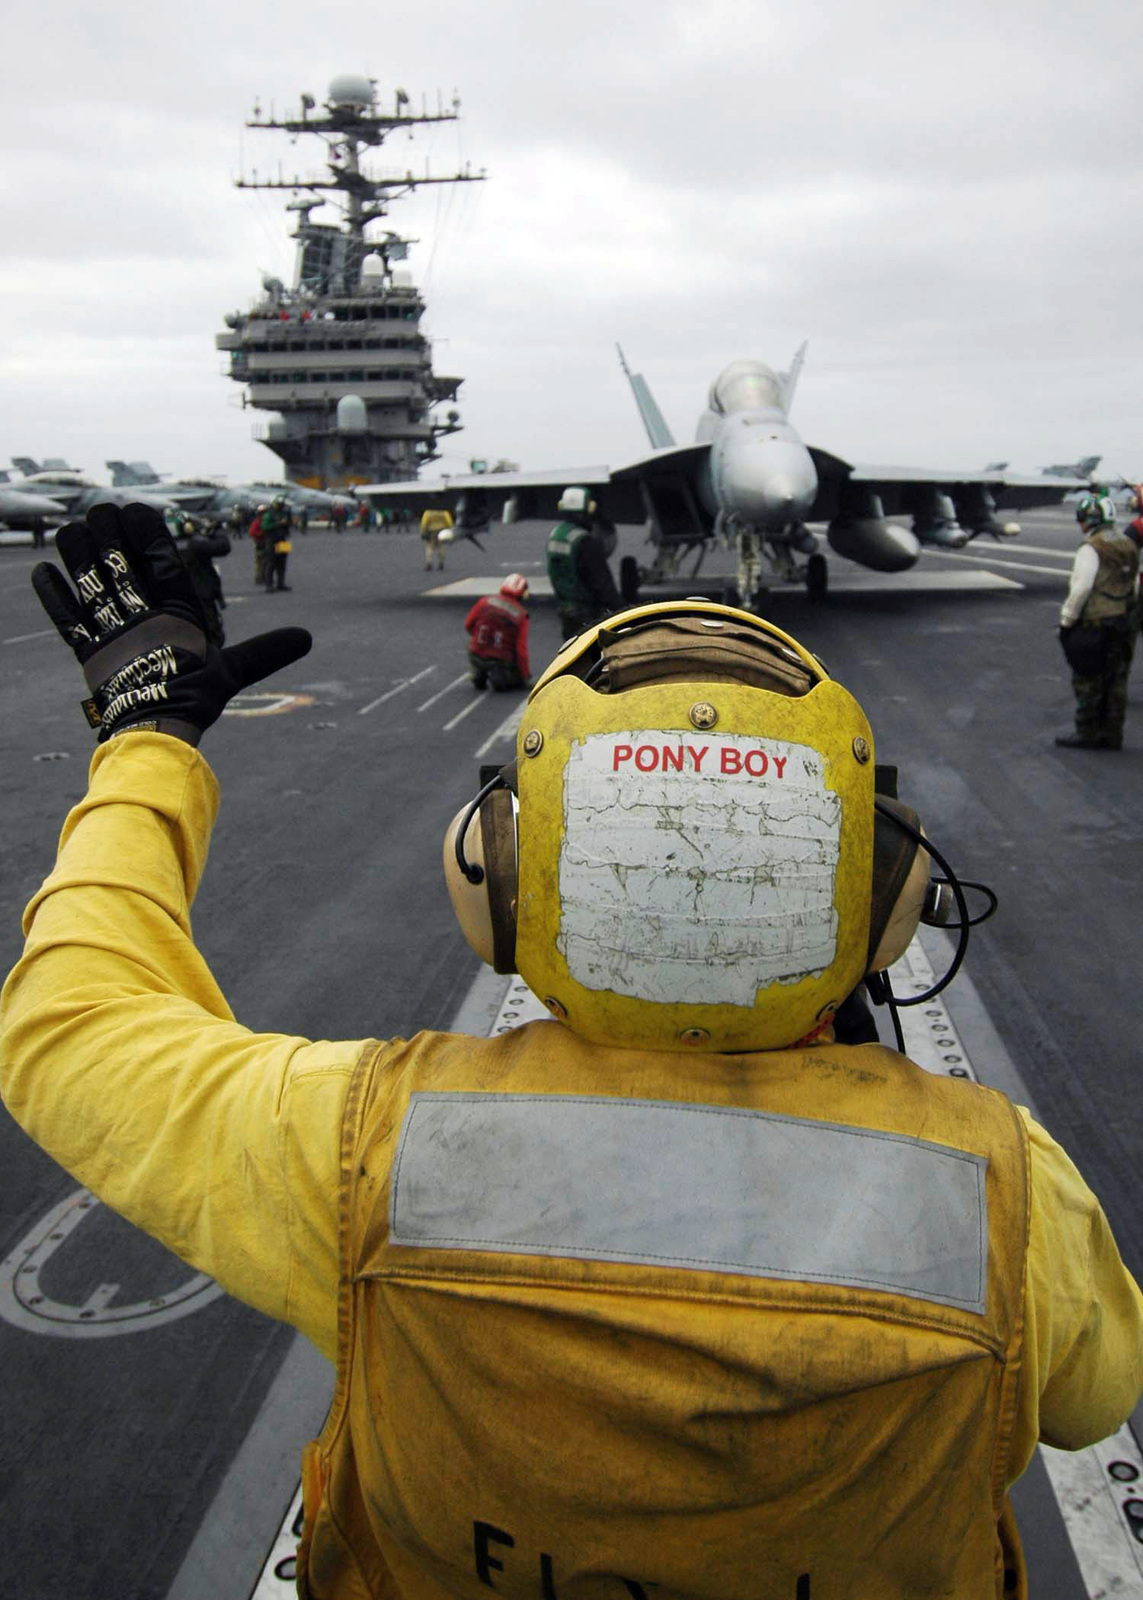 US Navy (USN) Aviation Boatswain's Mates Handlers direct a USN F/A-18F Super Hornet assigned to the USN Strike Fighter Squadron 2 (VFA-2) during operations on the flight deck of the USN Nimitz Class Aircraft Carrier USS ABRAHAM LINCOLN (CVN 72). The LINCOLN and USN Carrier Air Wing 2 (CVW-2) are completing a deployment in the Pacific Ocean